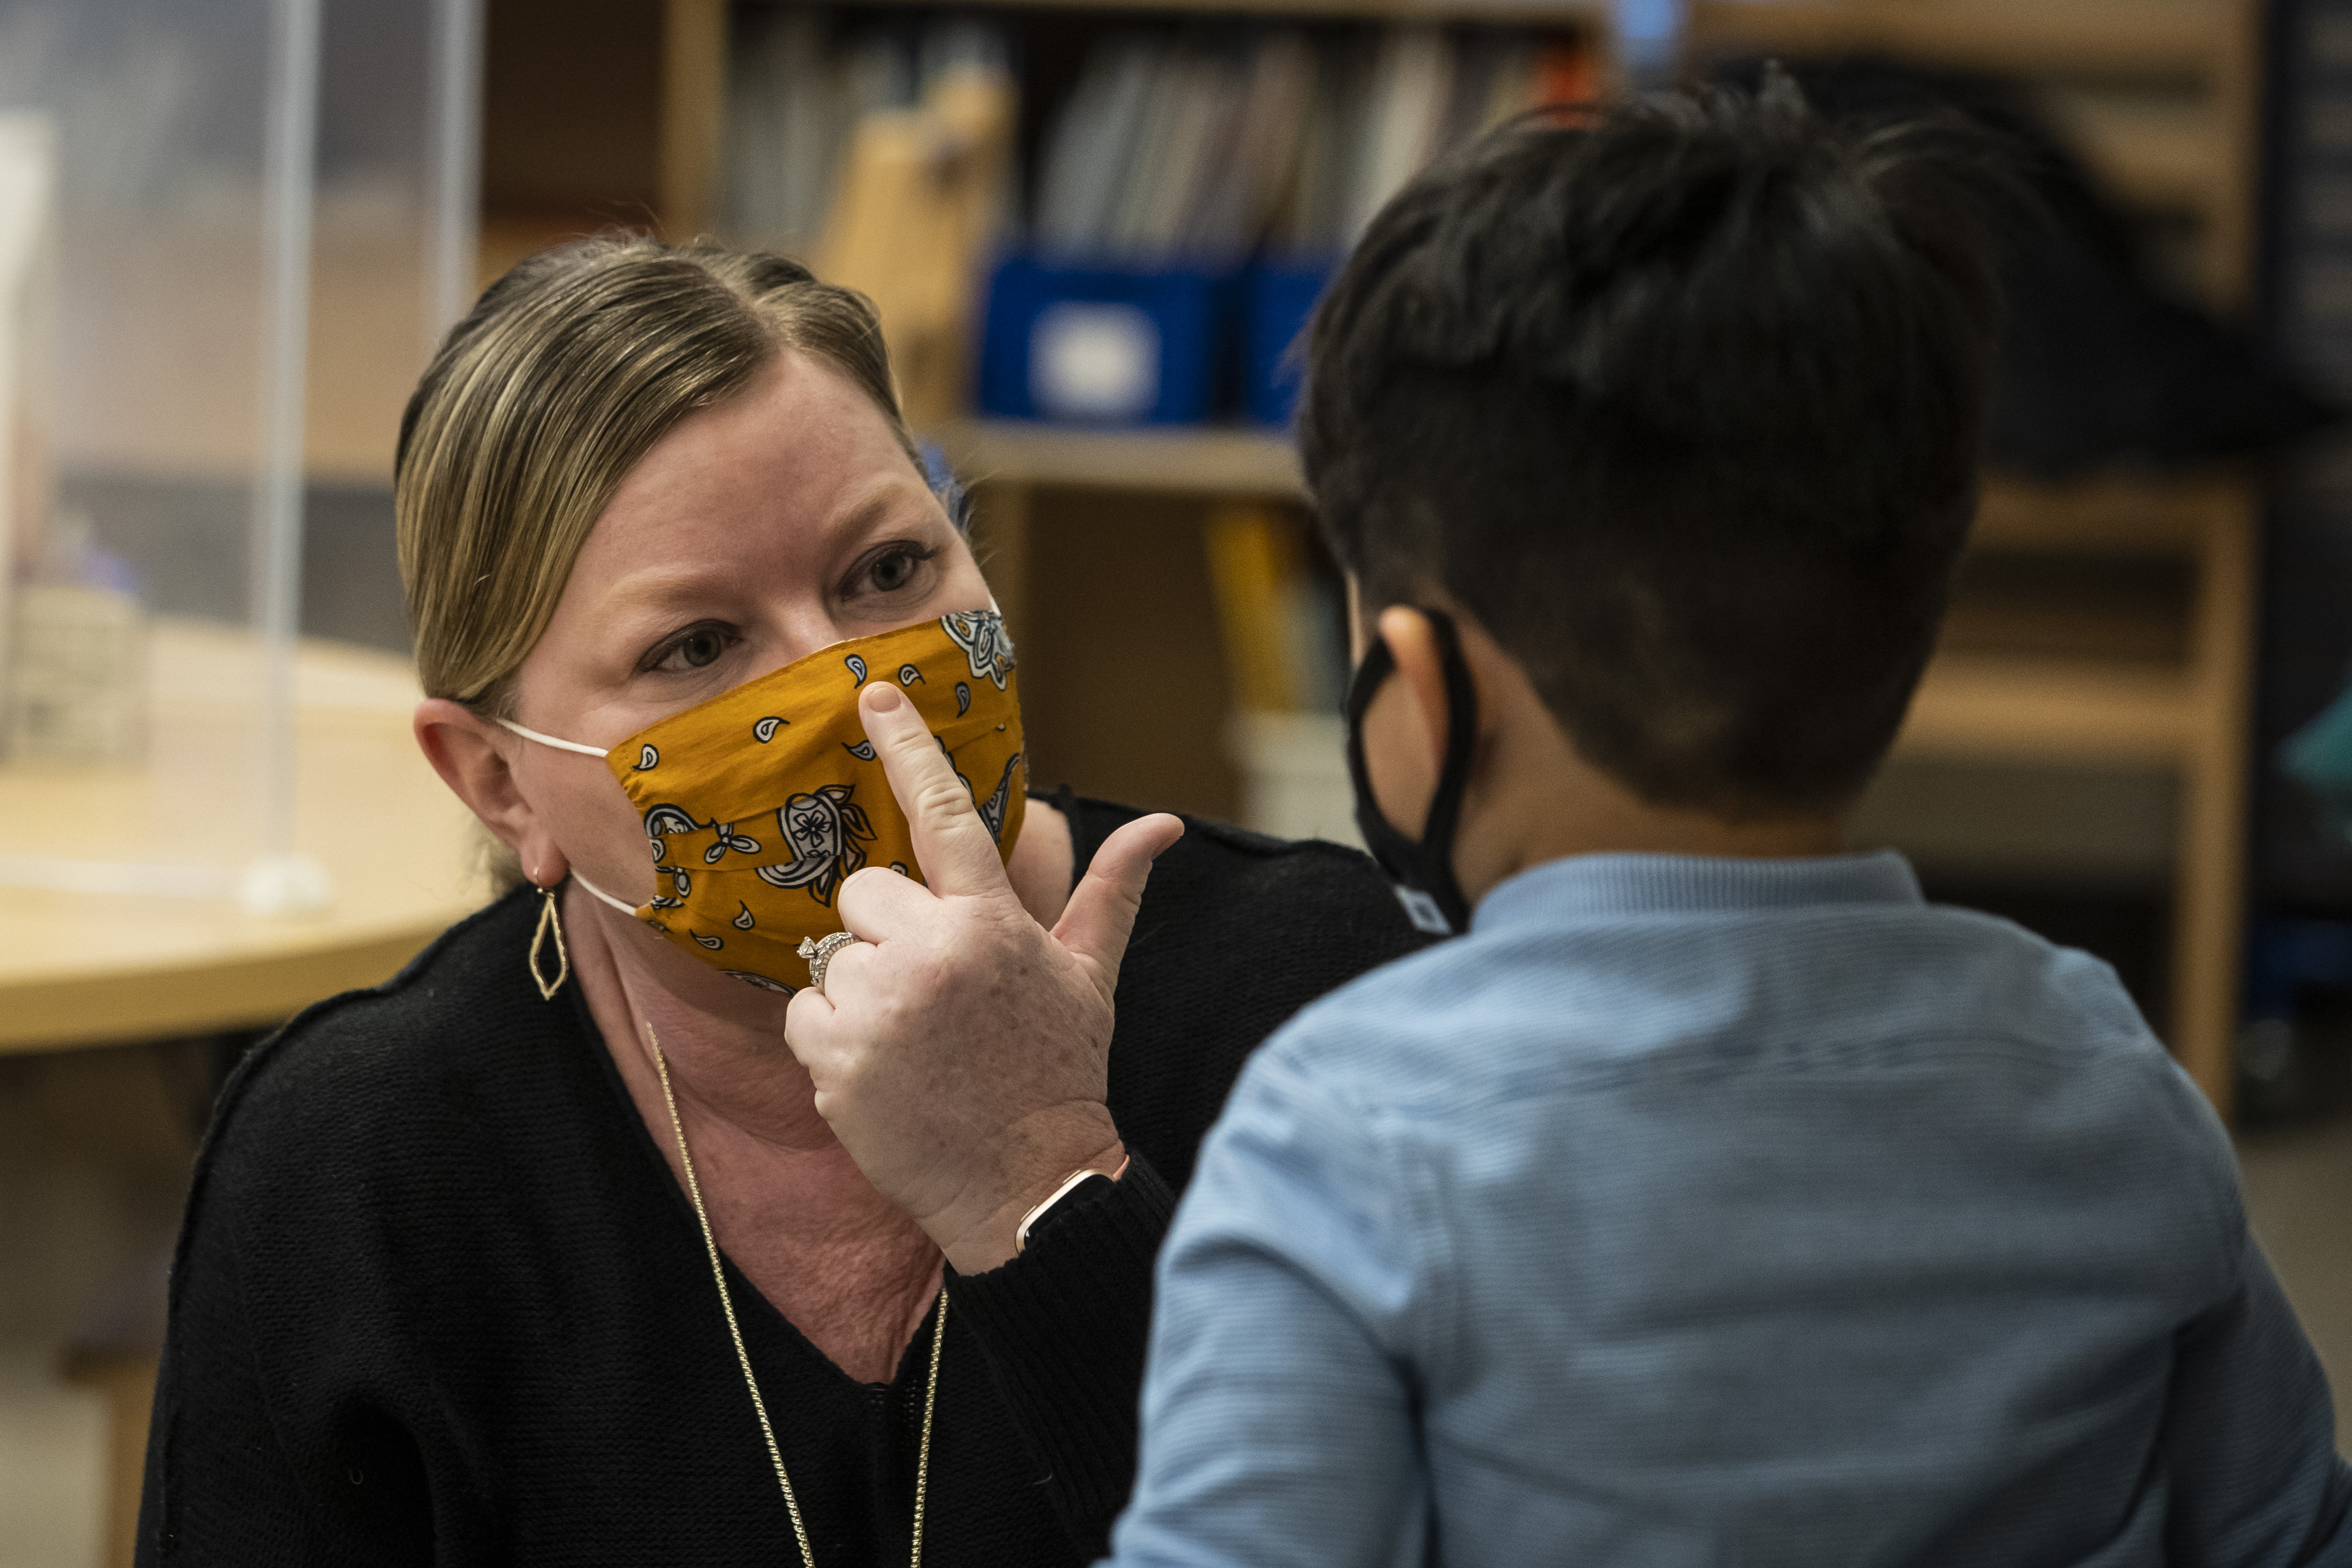 A Southwest Side preschool teacher shows a student how to properly wear a mask earlier this year. New CDC guidelines recommend masks for anyone inside a school regardless of vaccination status.